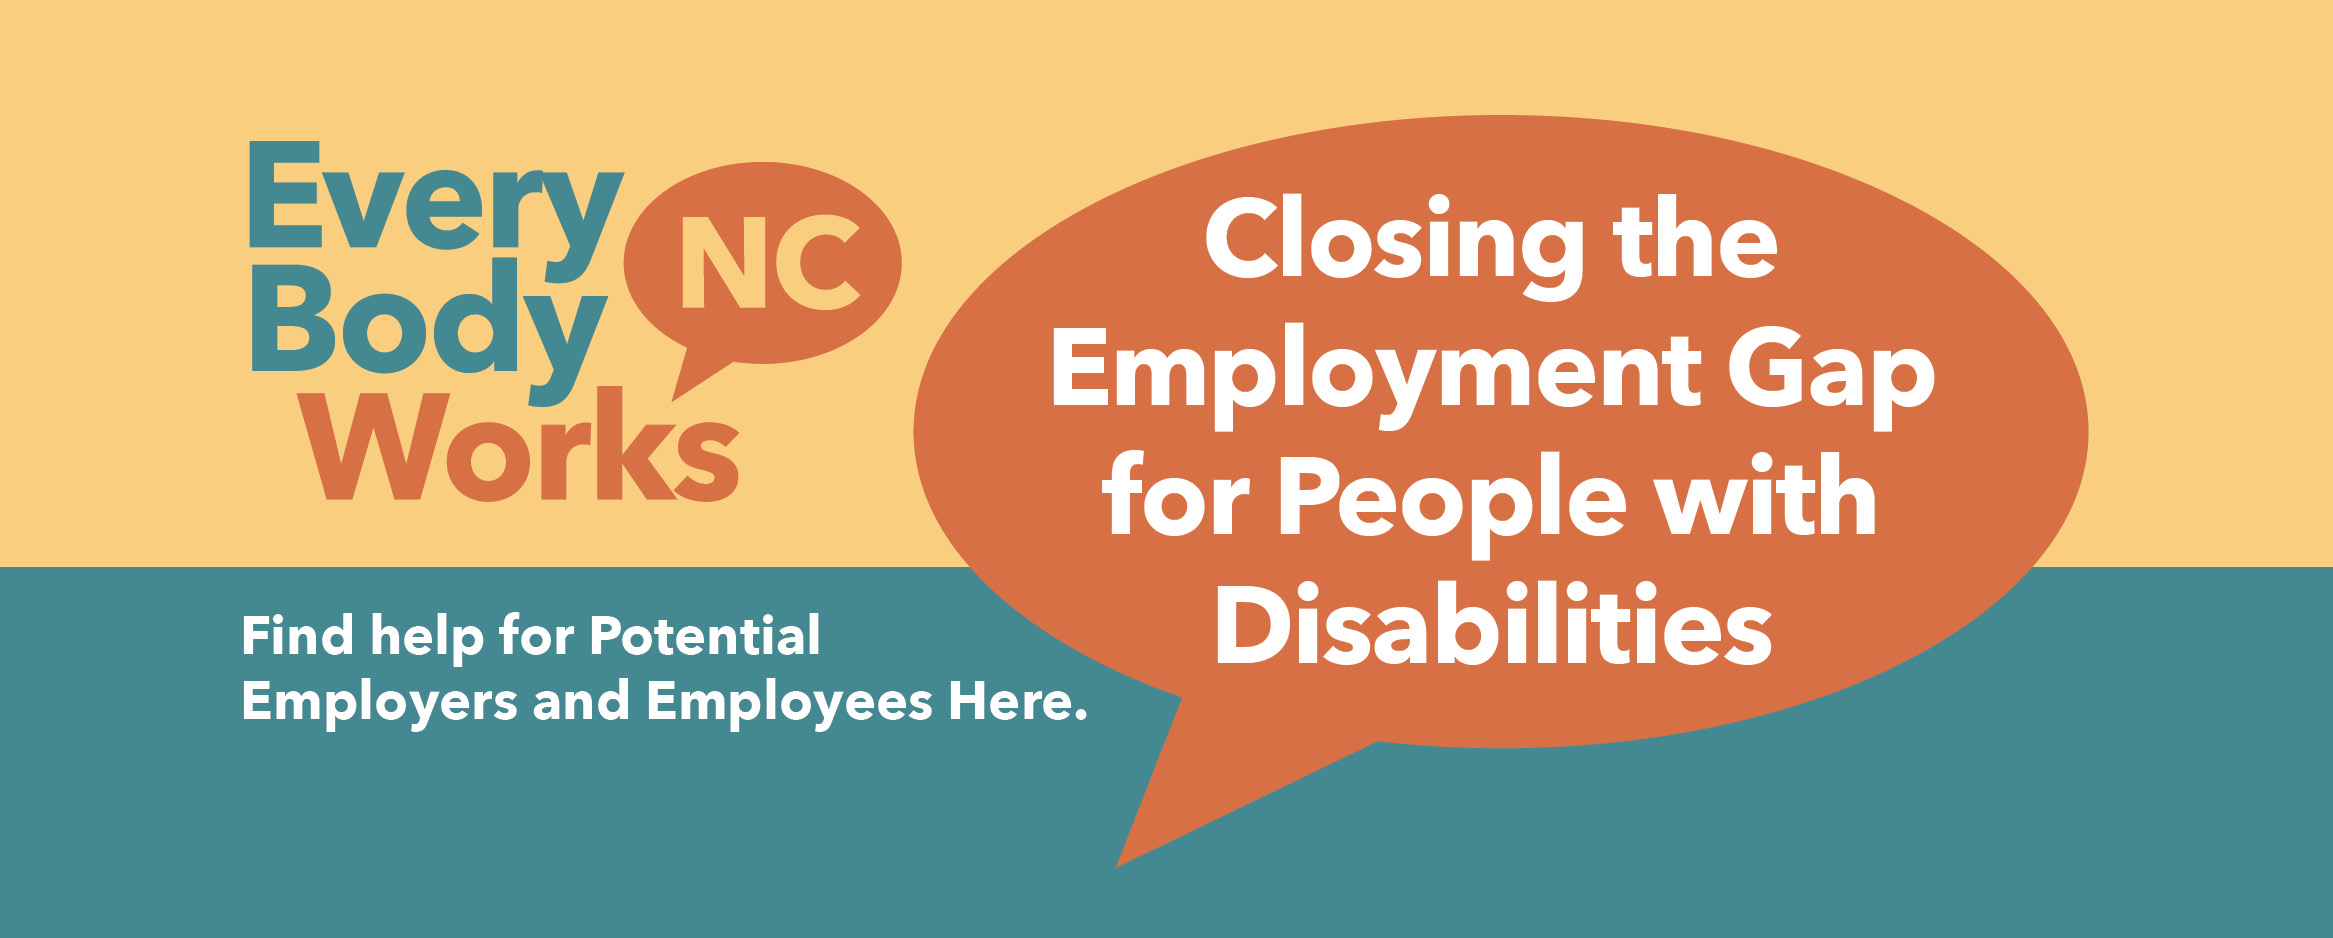 EveryBody Works NC - Closing the Employment Gap for People with Disabilities